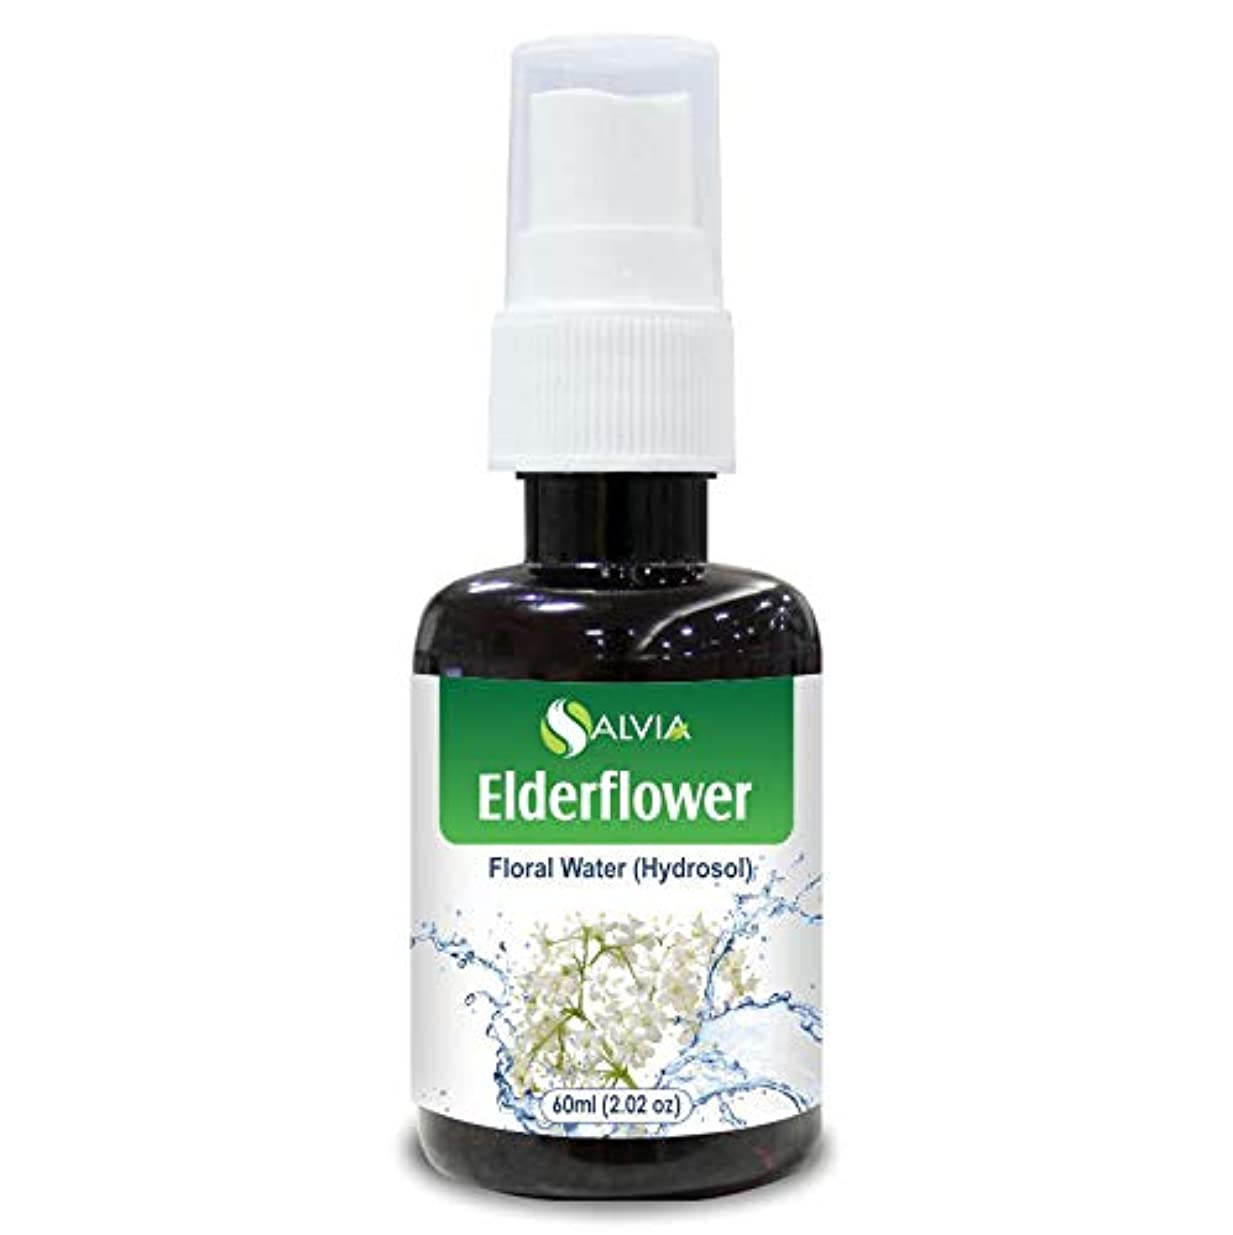 Elderflower Floral Water 60ml (Hydrosol) 100% Pure And Natural